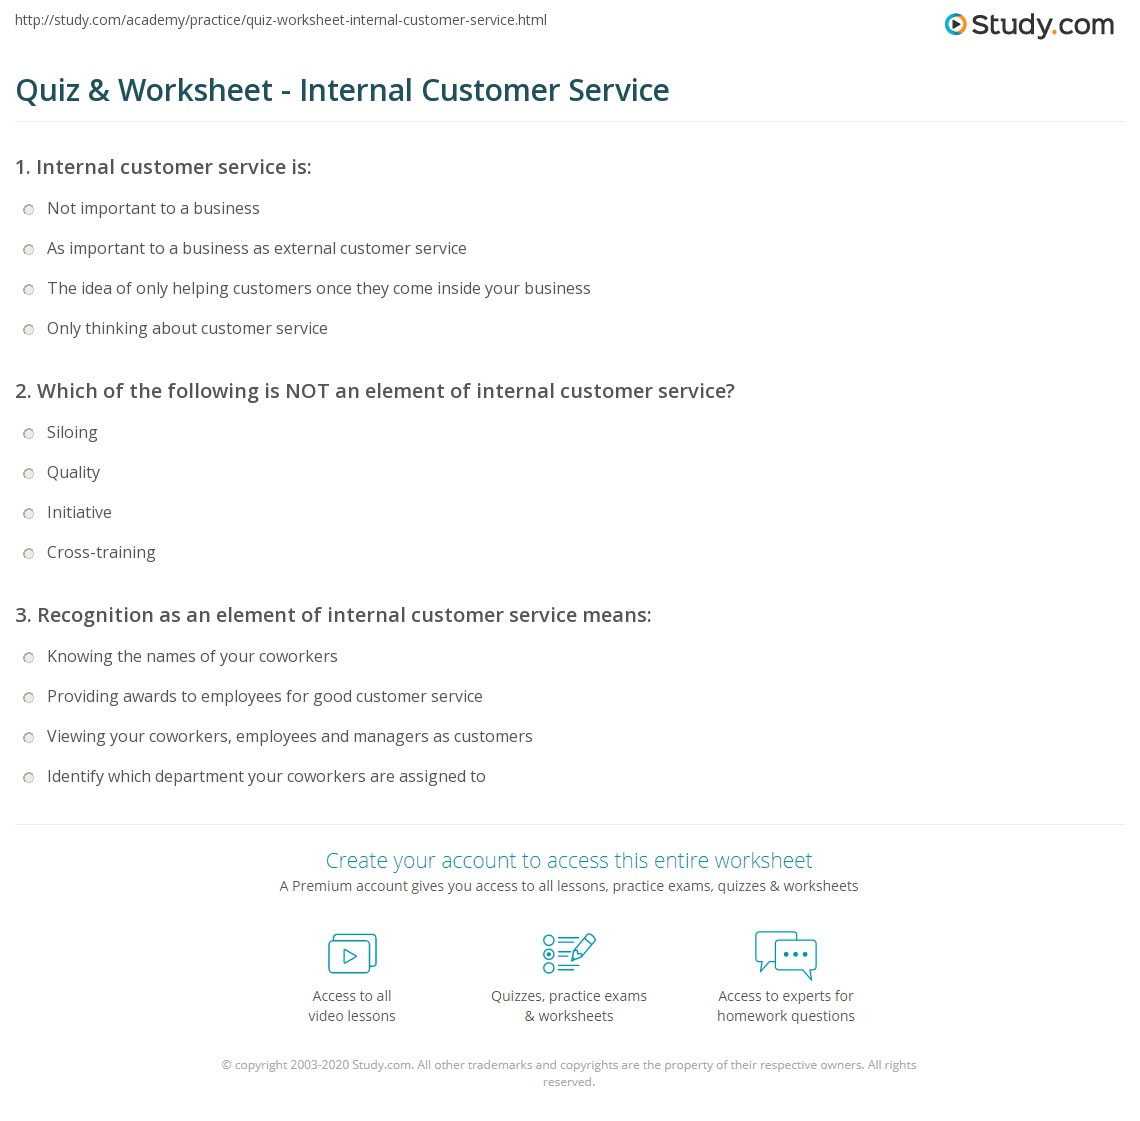 quiz & worksheet - internal customer service | study